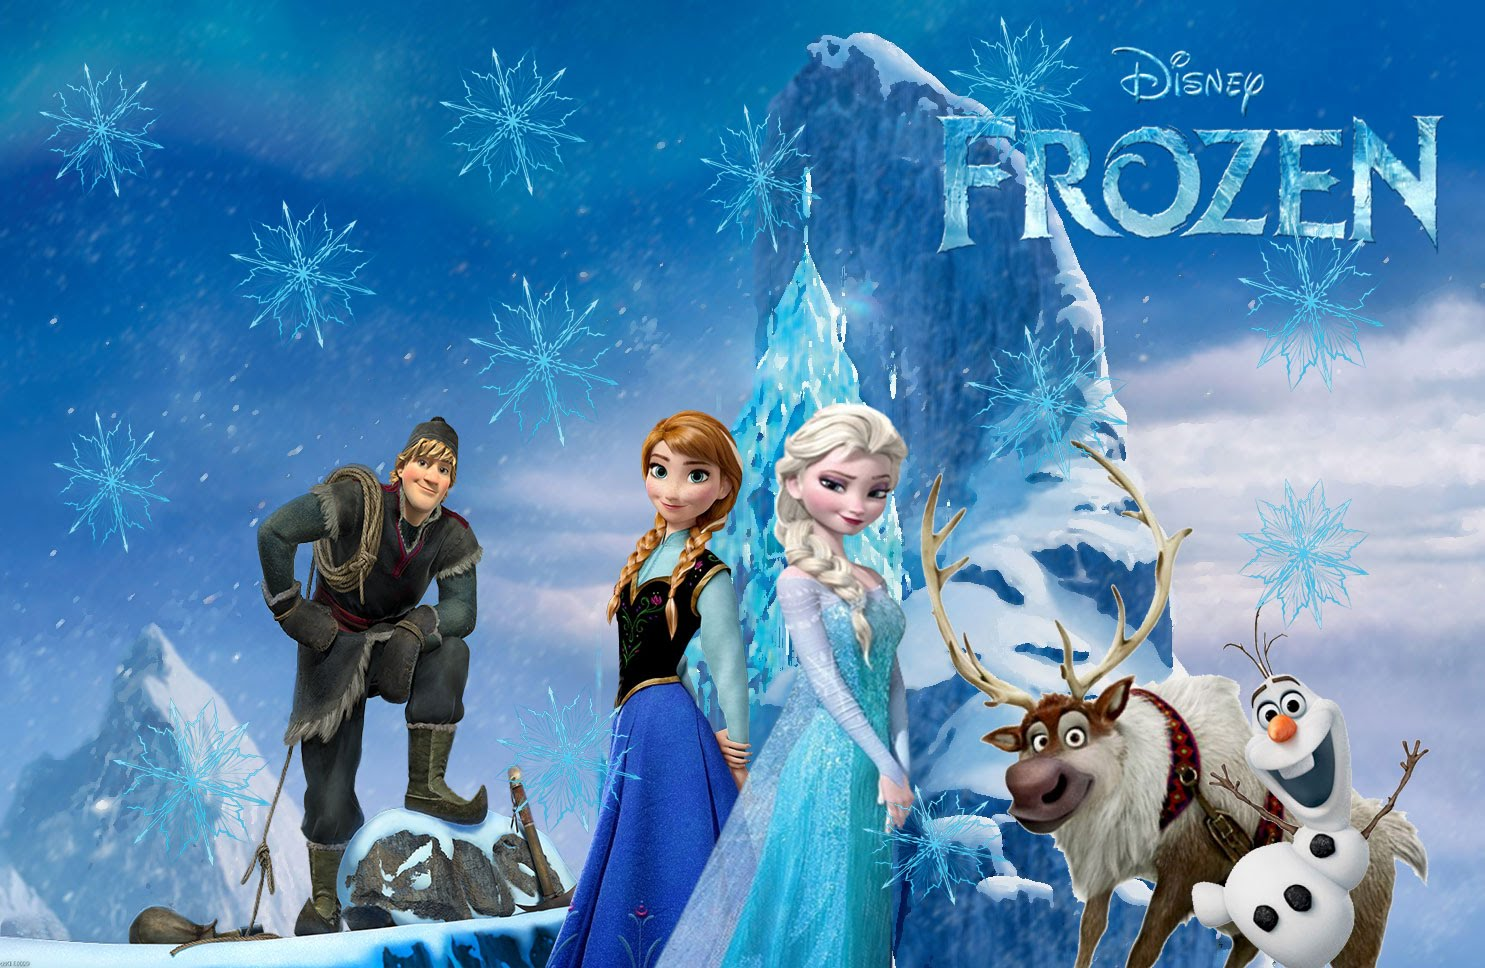 frozen wallpaper for birthday ; Frozen-Wallpaper-with-main-Characters